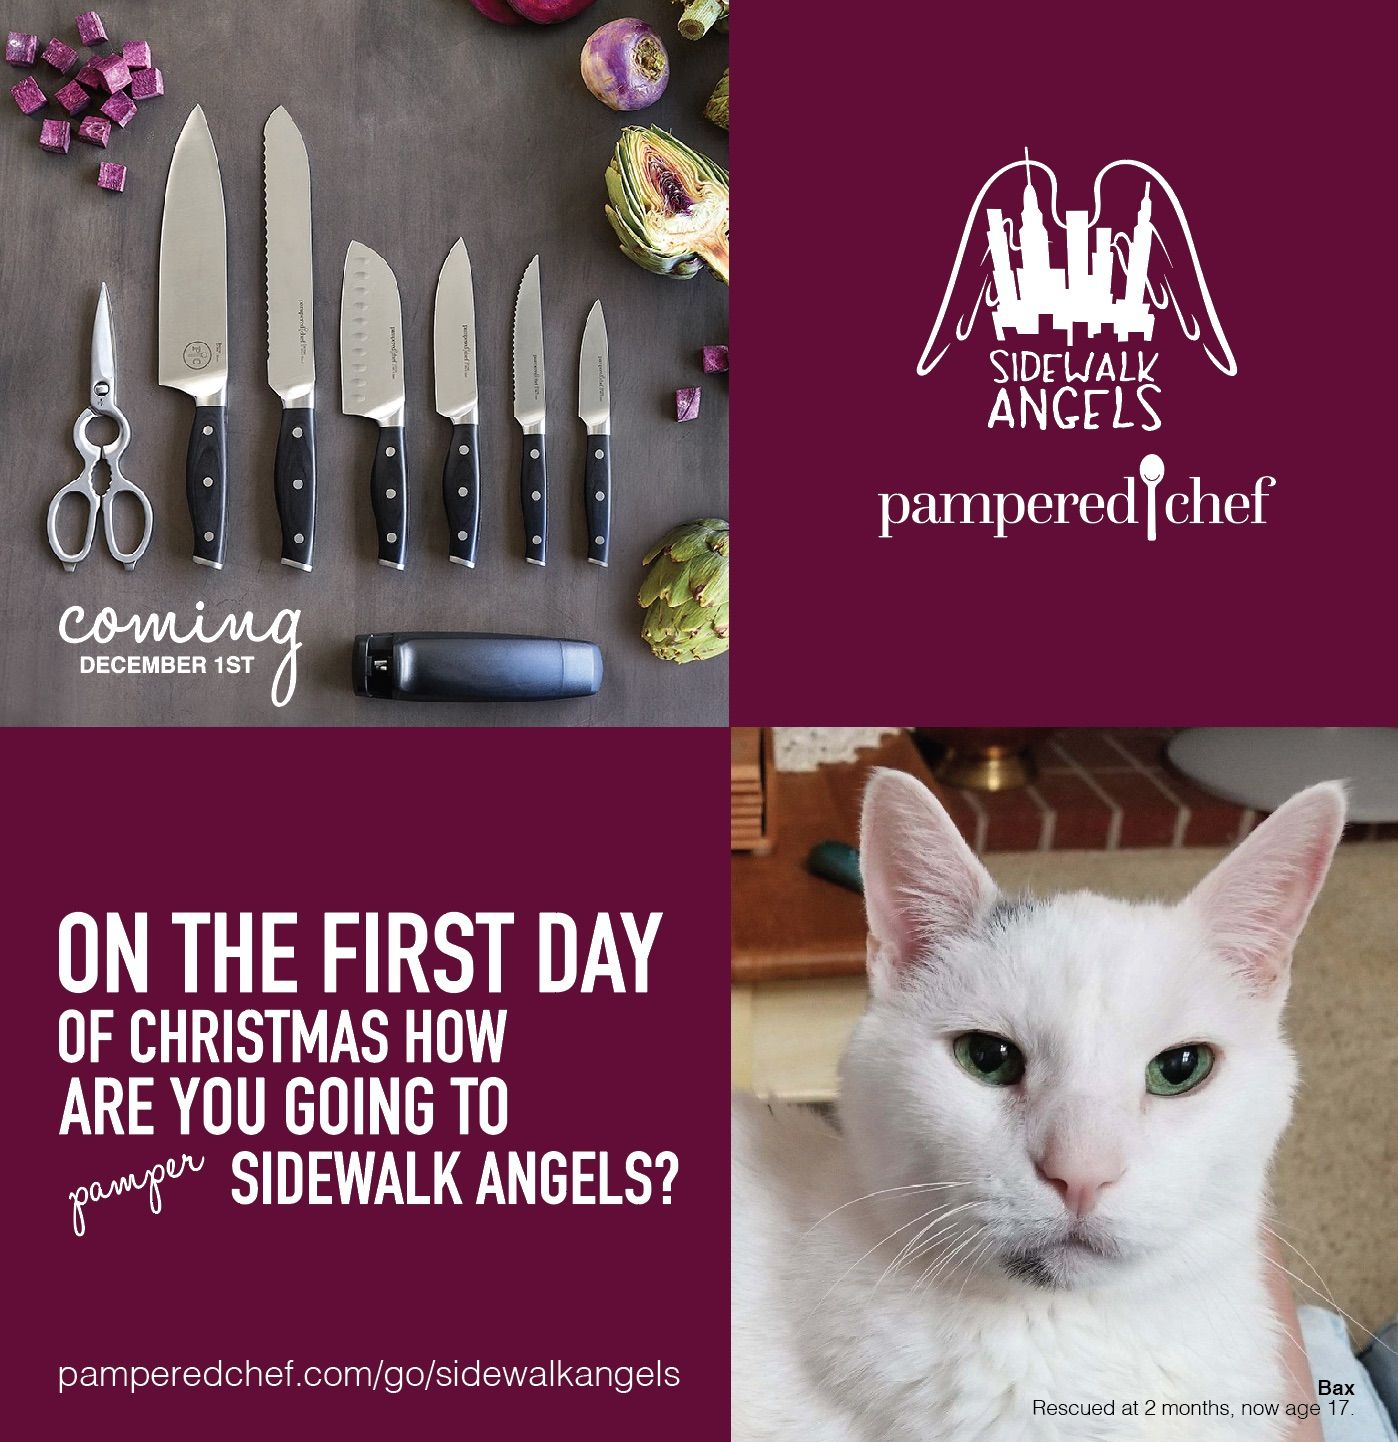 Pampered chef commission